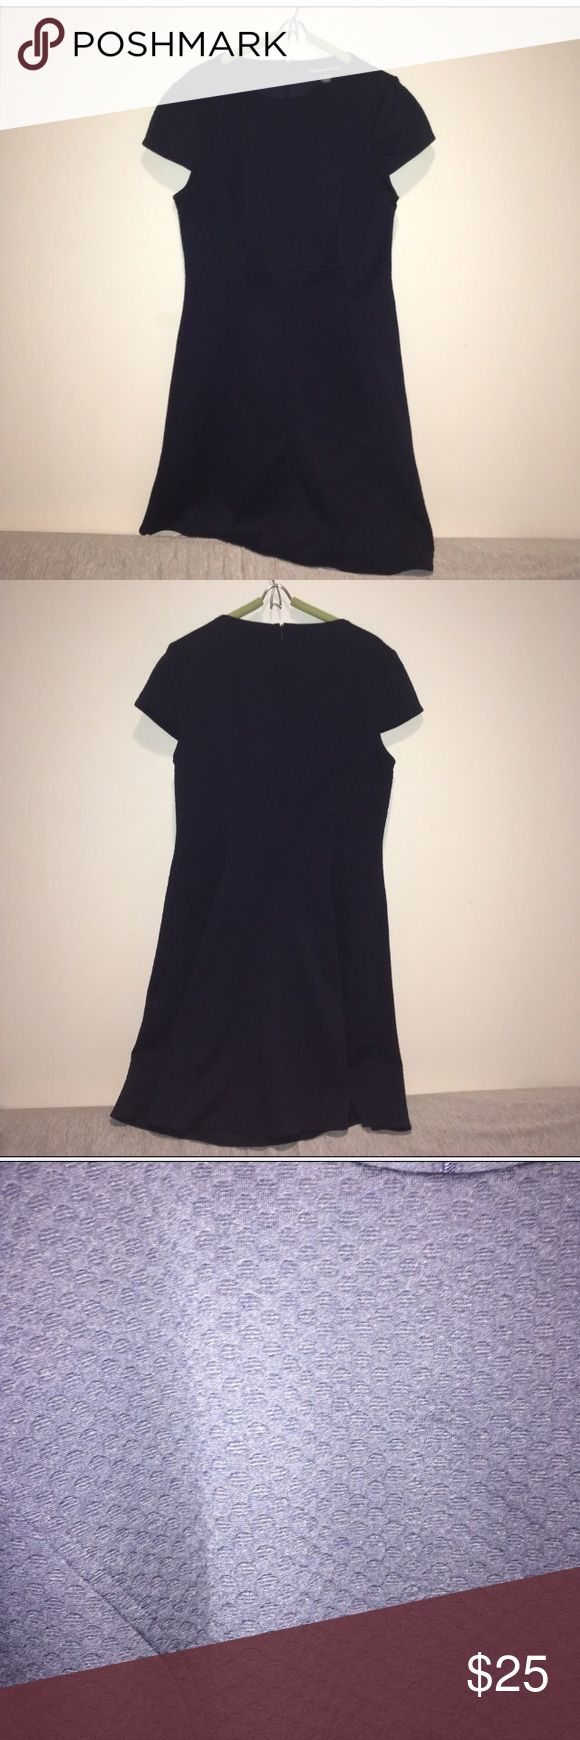 Navy cap sleeve dress A-line dress with cap sleeves. Great dress that can be dressed up or down depending on the occasion American Living Dresses